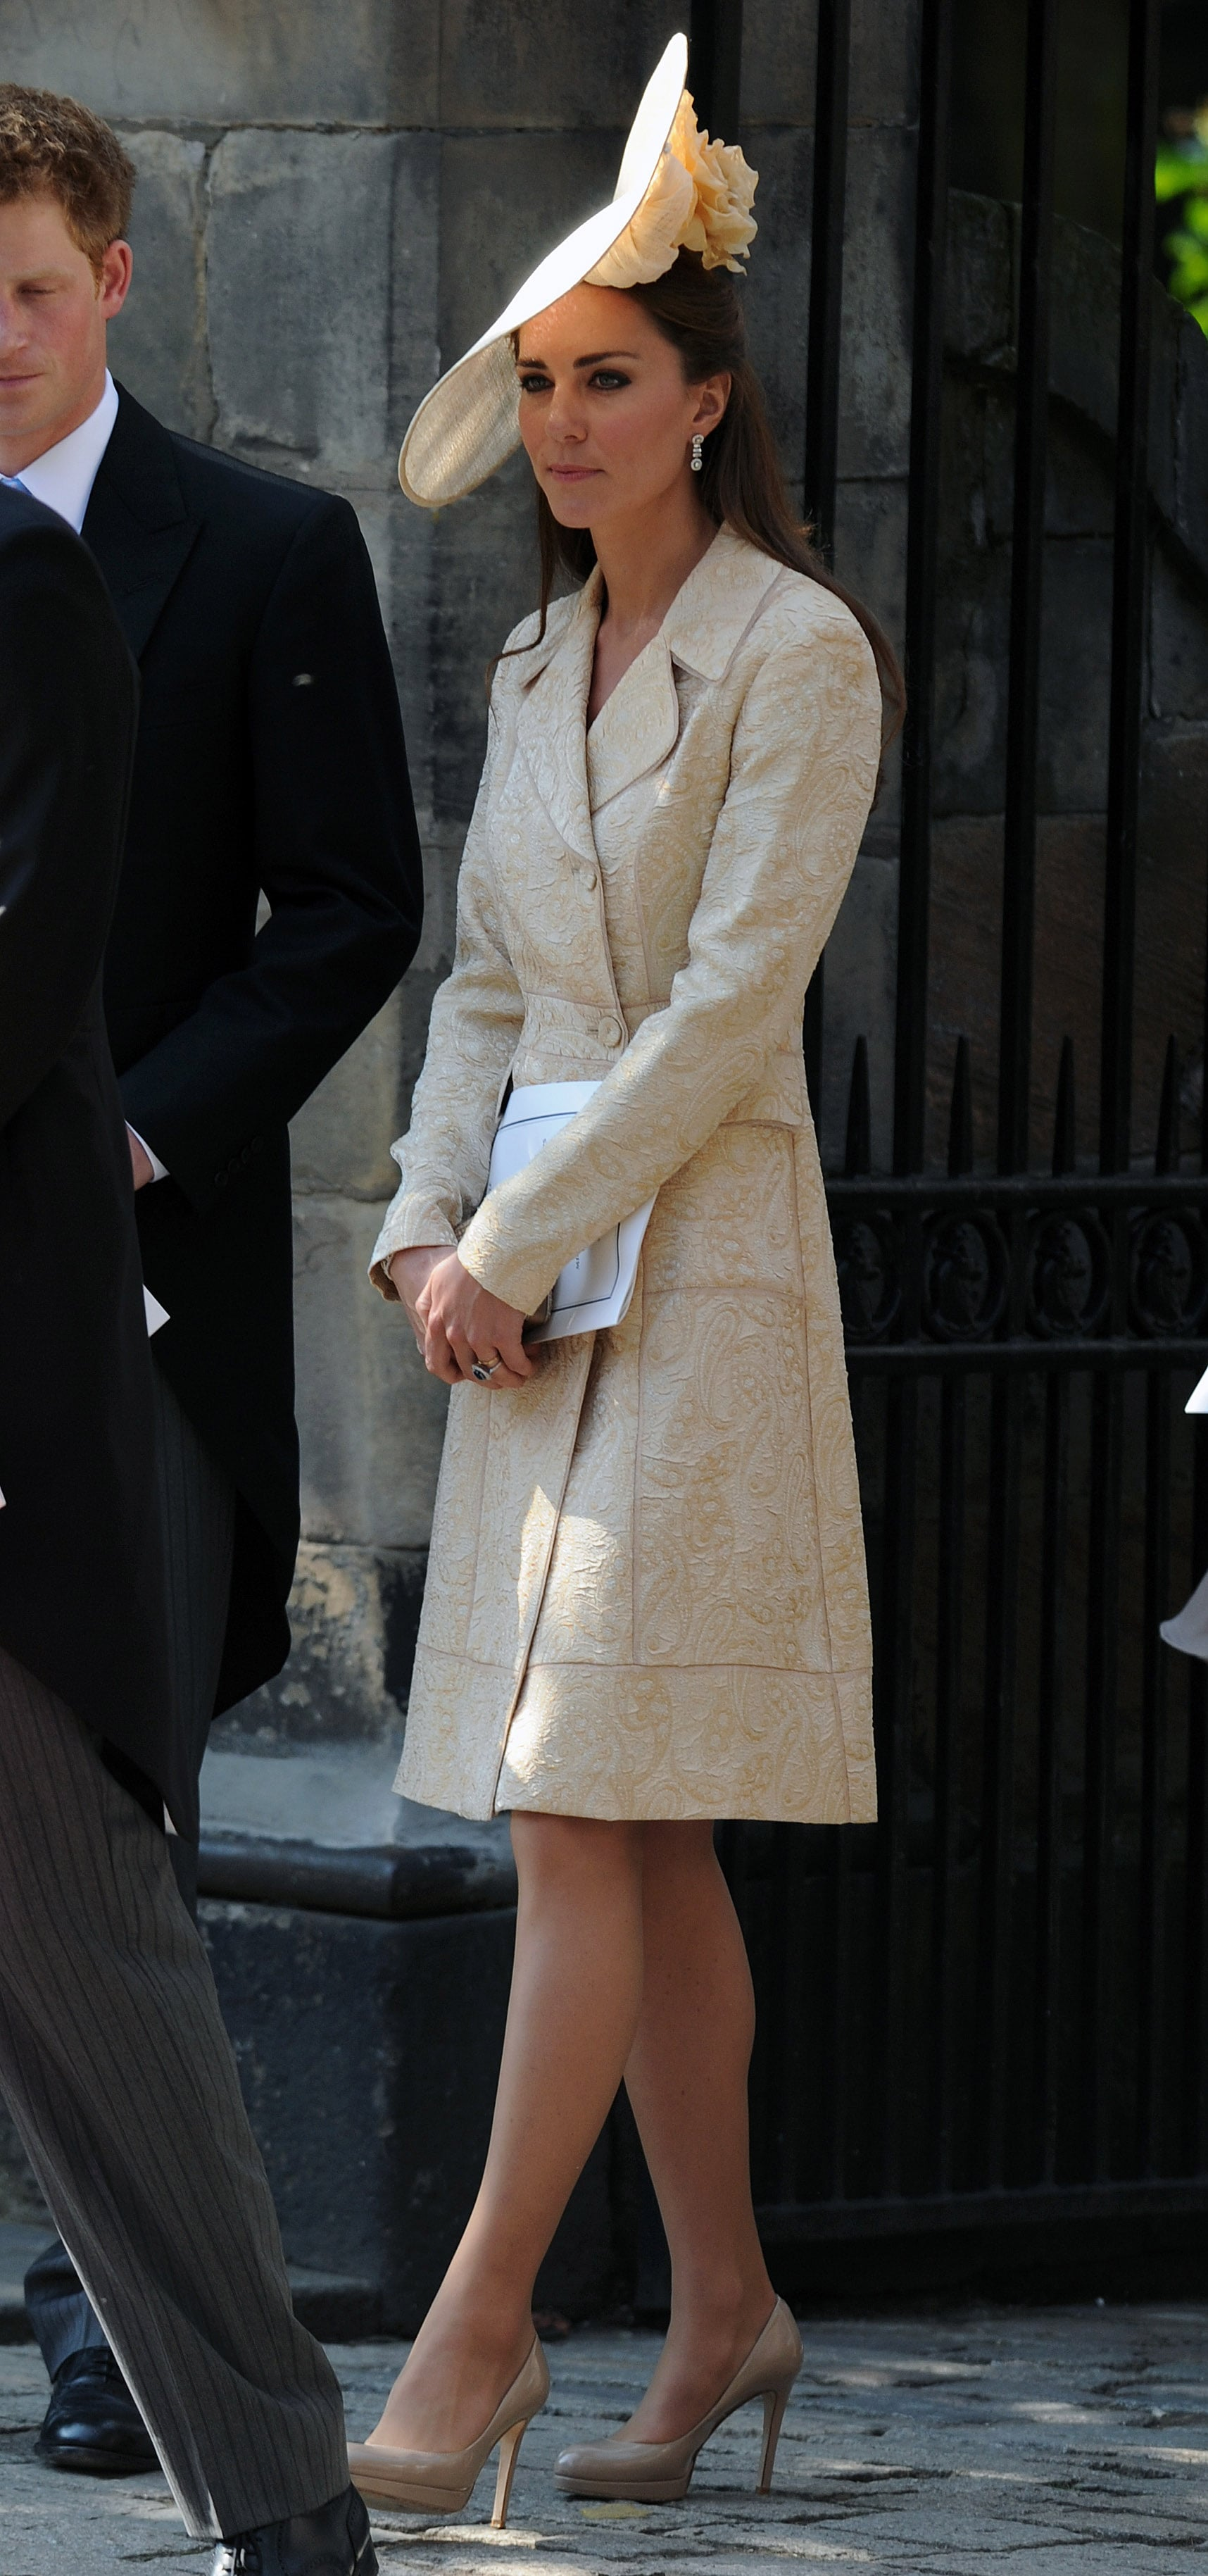 Kate Middleton was one sophisticated wedding guest in a printed coat and matching hat when Zara Phillips got married in Edinburgh in July 2011. To mimic Kate's style, top your wedding attire with a statement coat for the ceremony; then take it off for the reception.